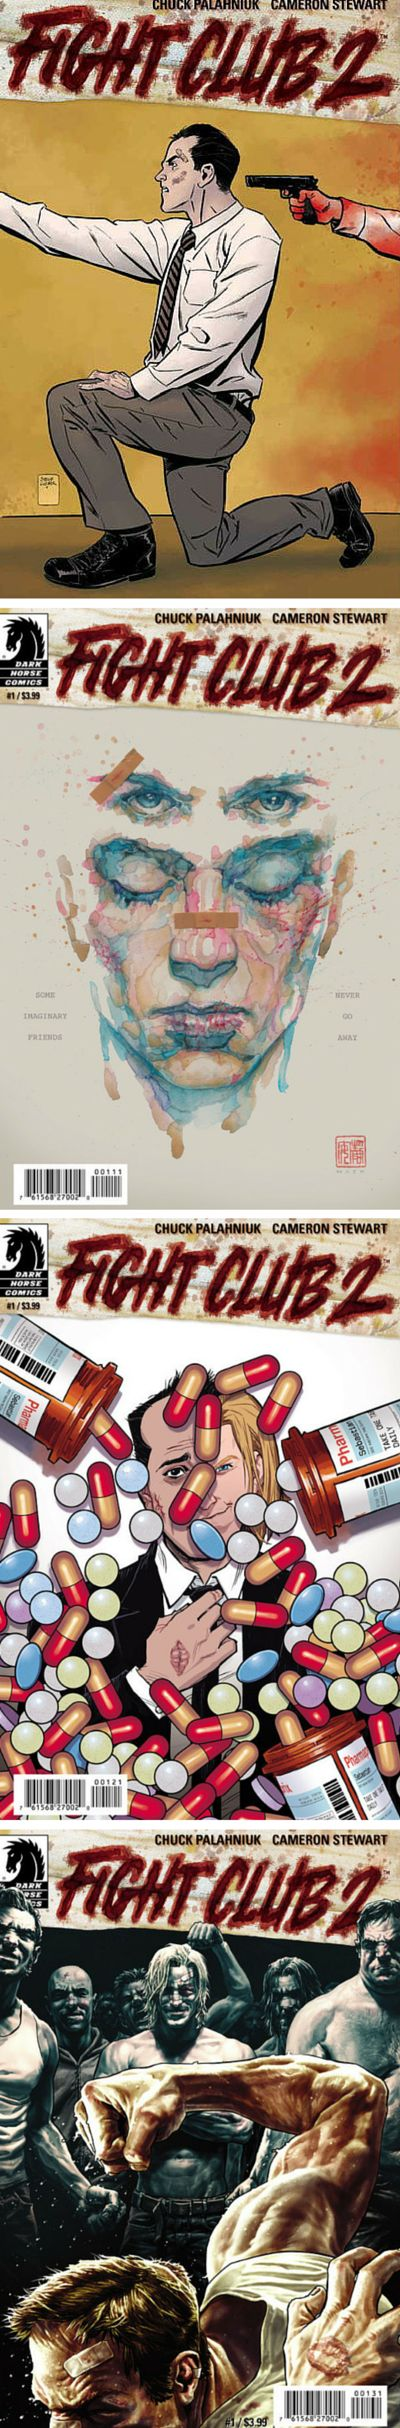 Fight Club 2 by Chuck Palahniuk & Cameron Stewart. Go back to the Space Monkeys and Project Mayhem, with Tyler, Marla, & Sebastian. Rize or Die.